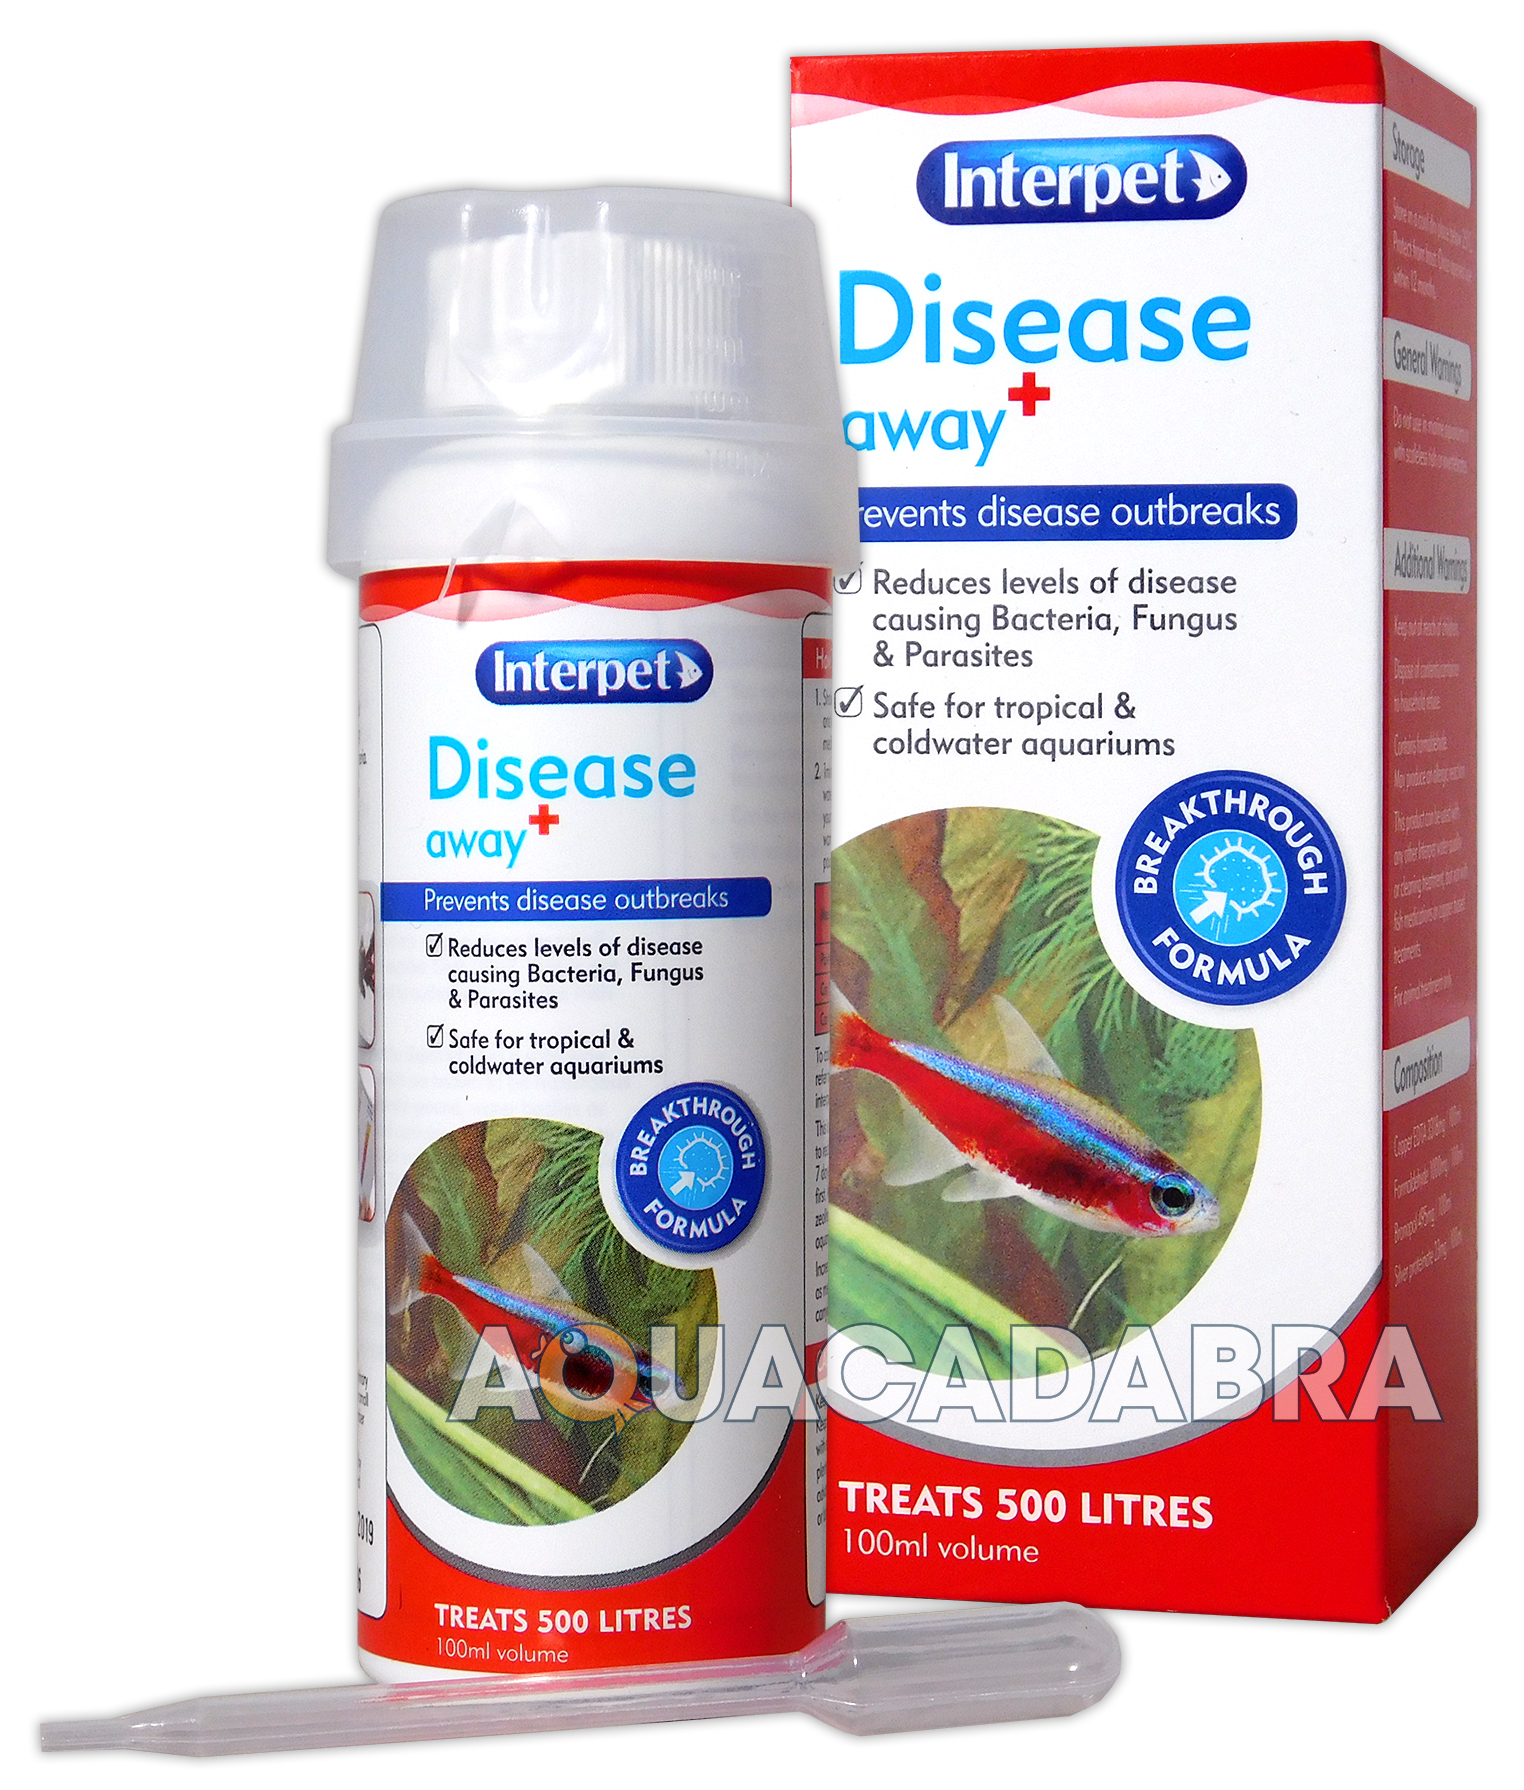 Aquarium fish tank cyprus - Interpet New Treatments Water Health Medicine Liquid Treat Aquarium Fish Tank